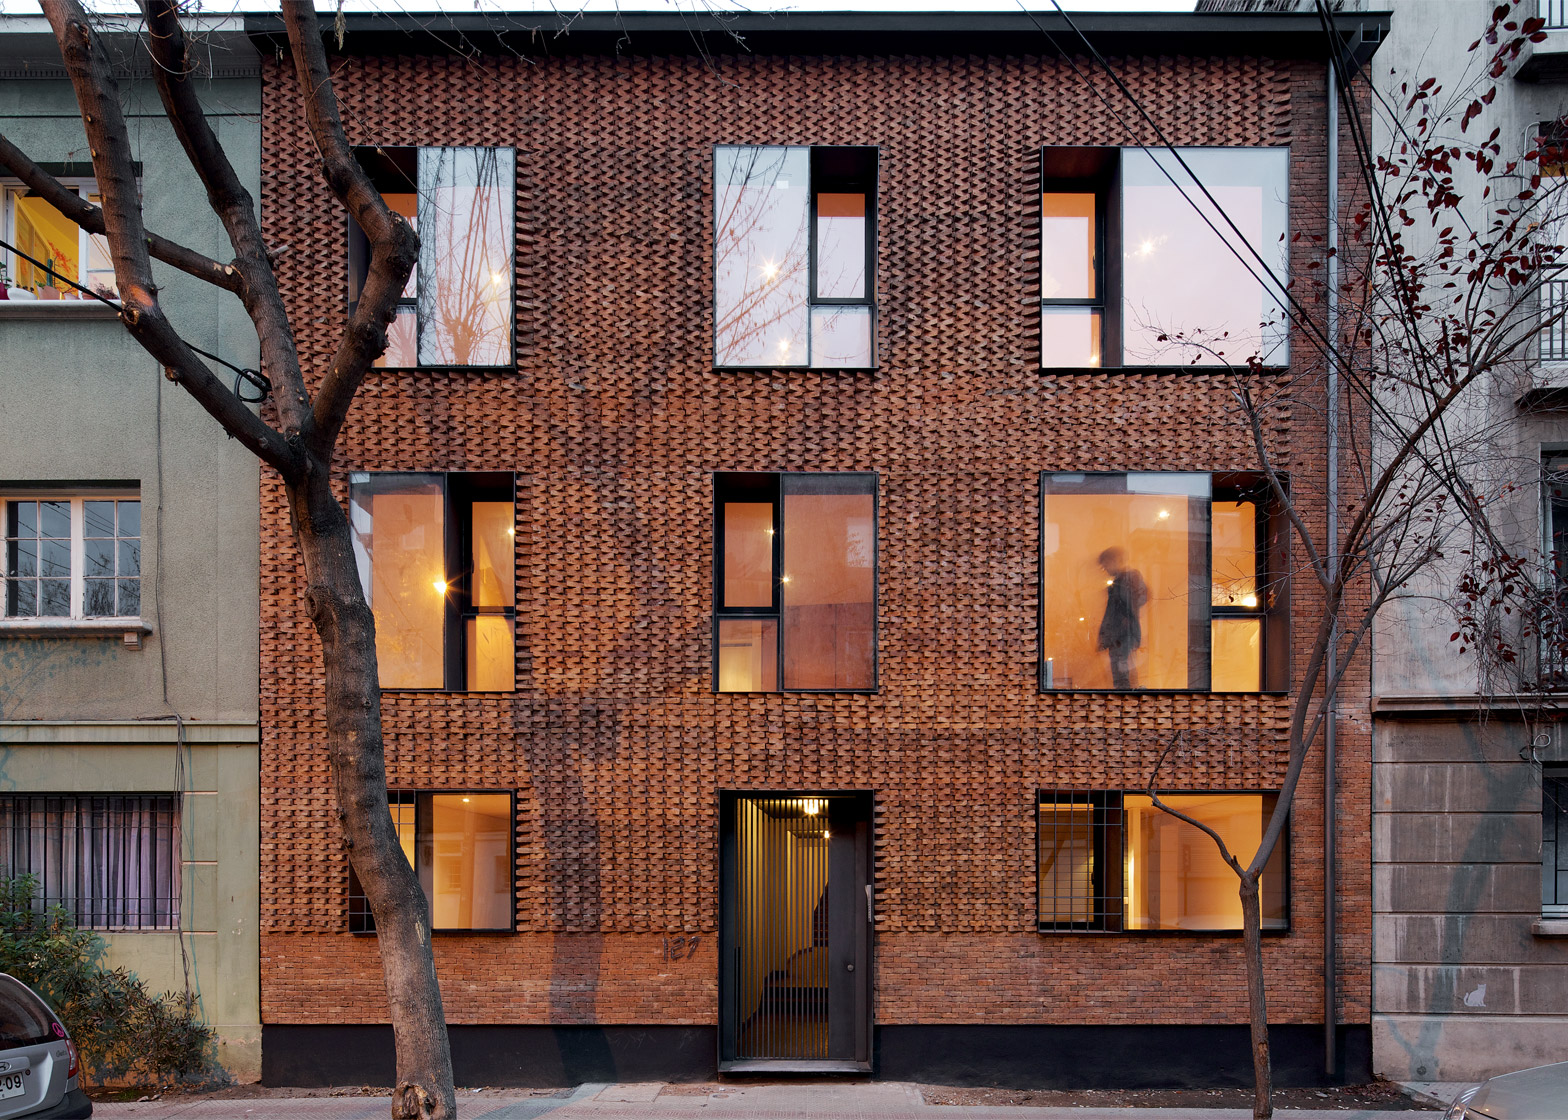 brick apartment building. 1 of 9  Project E RC by MAPA in Santiago Chile updates Chilean housing block with textured brick facade